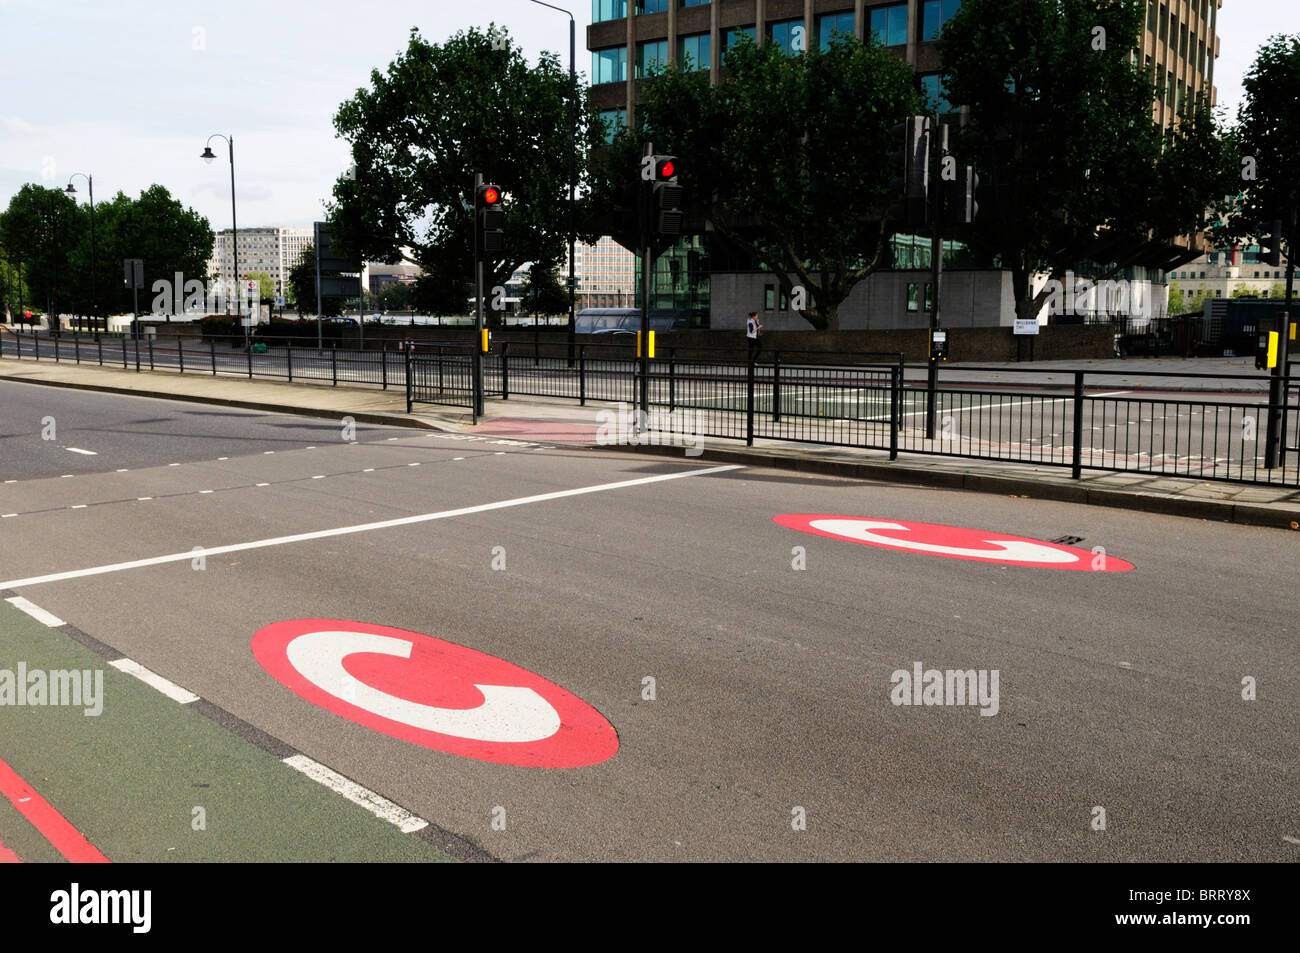 Red Congestion Charging Symbols painted on the Road, Millbank, London, England, UK, - Stock Image